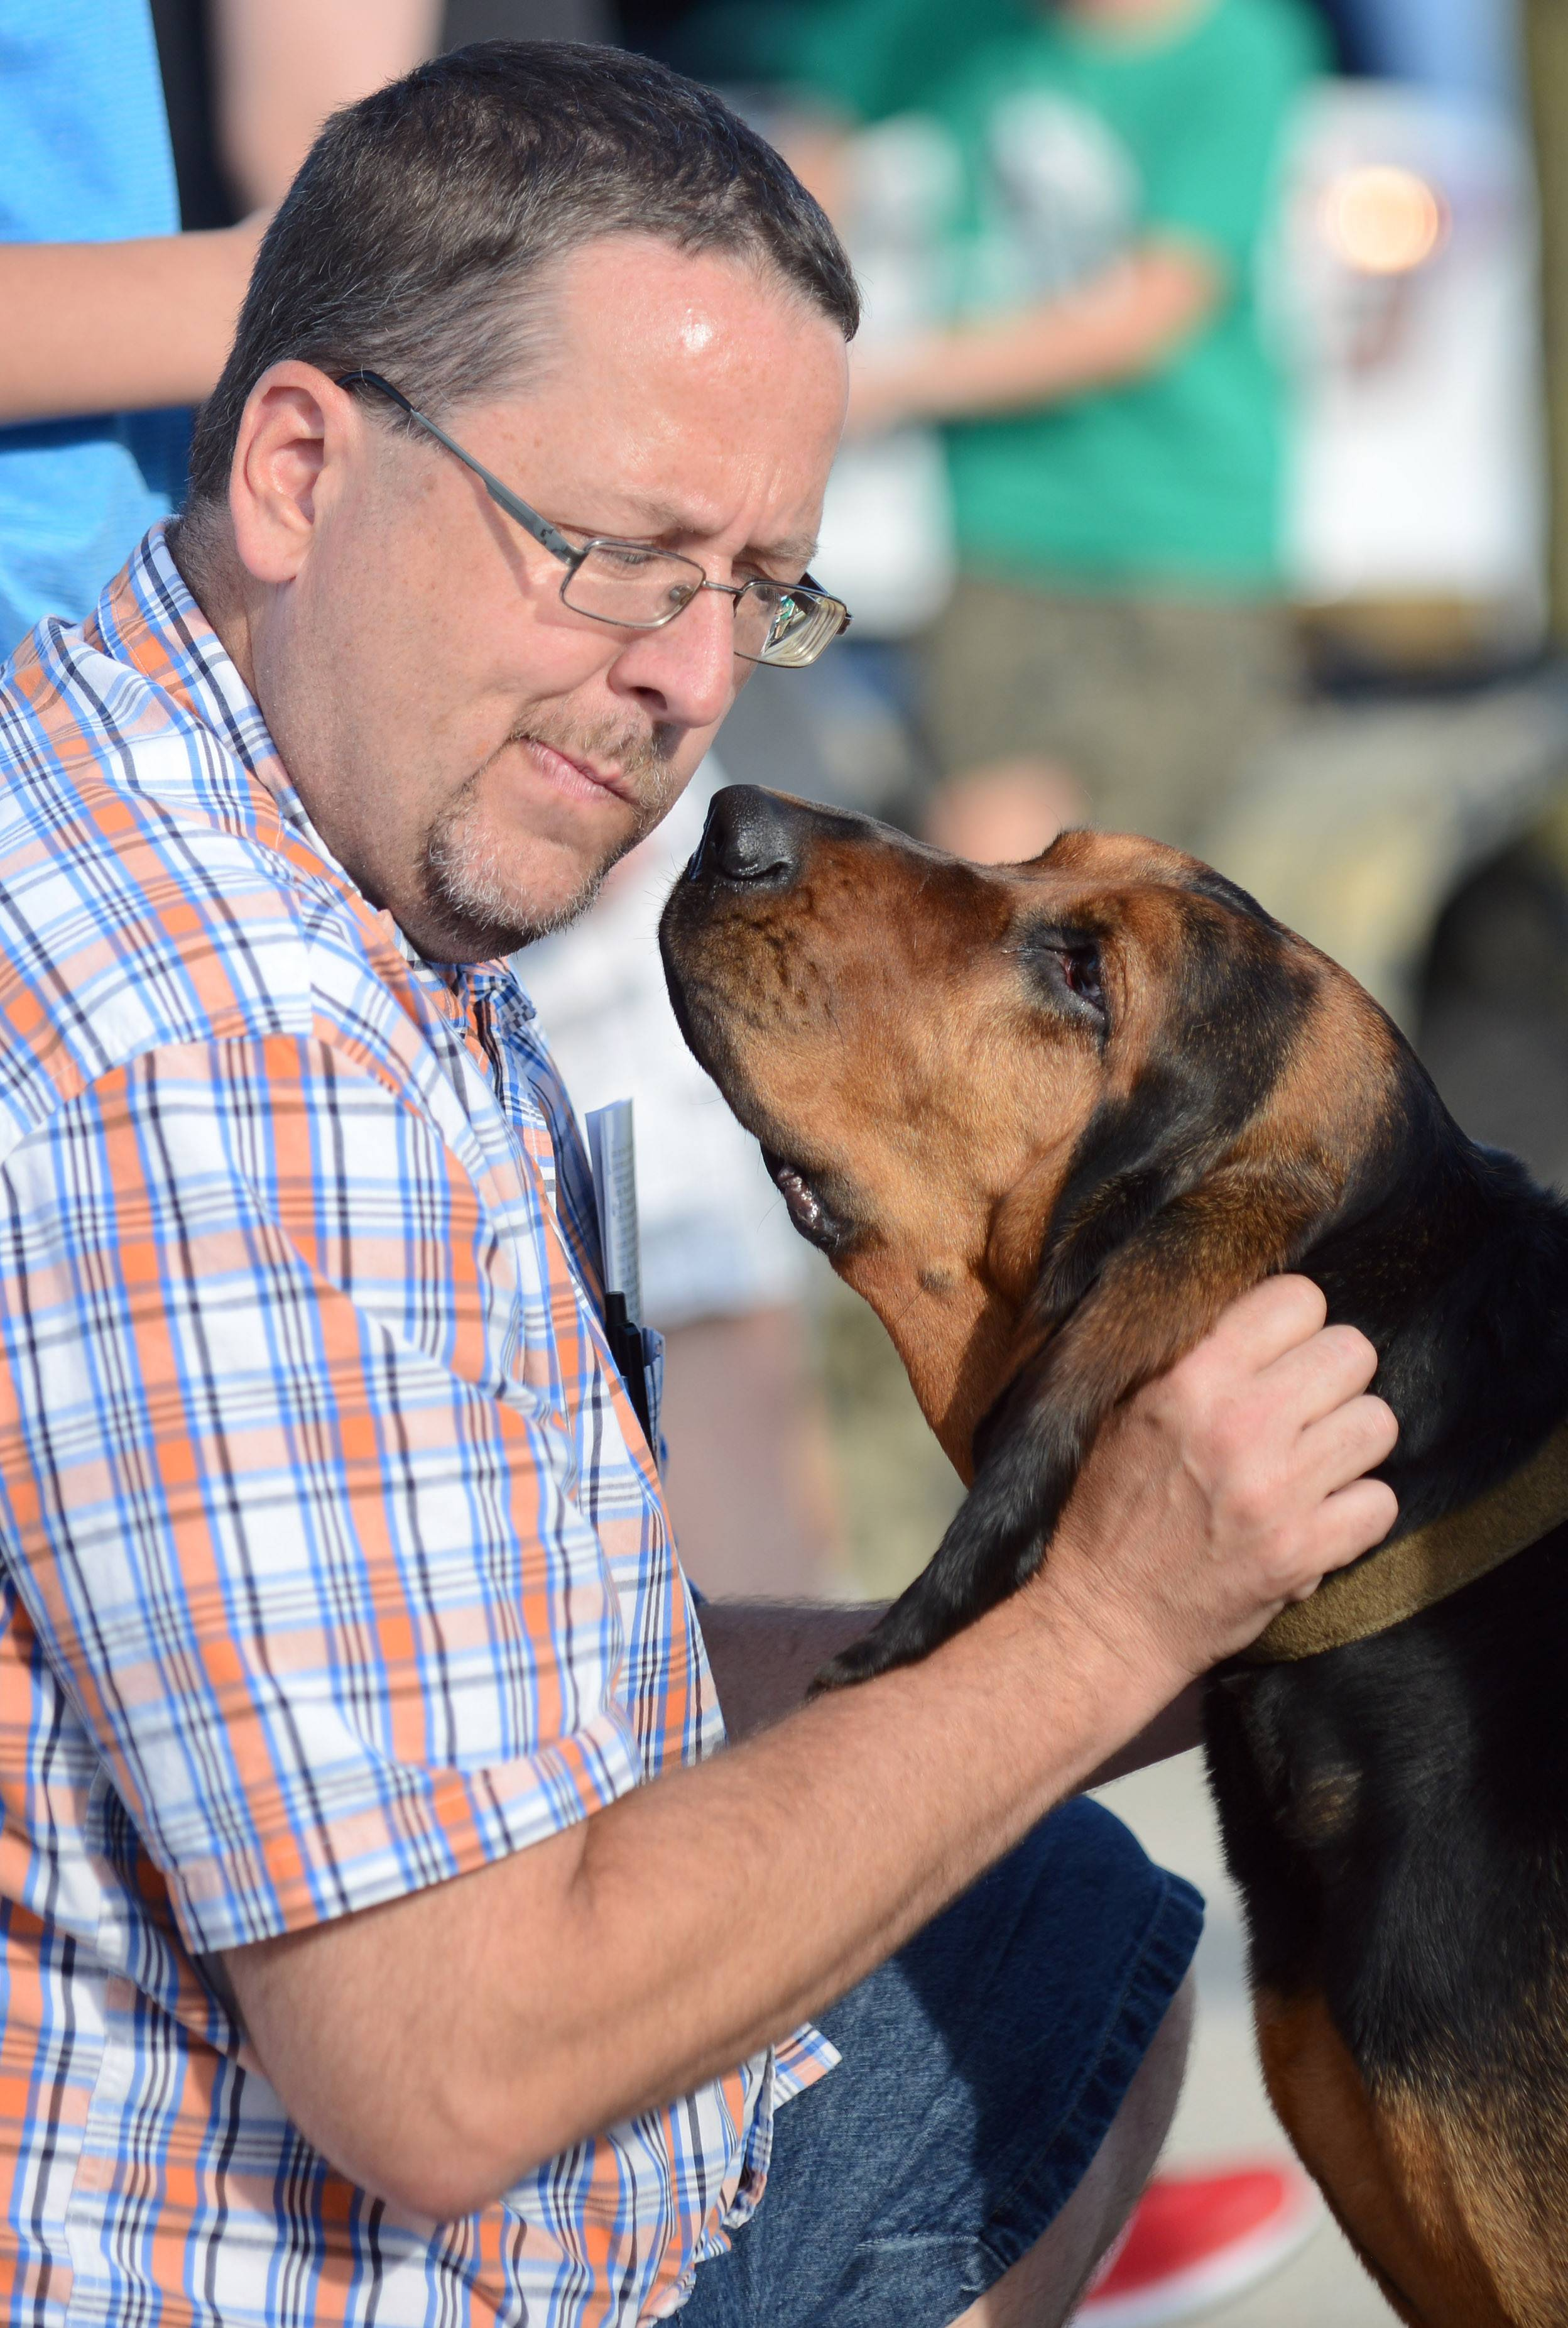 Kane County Sheriff K-9 bloodhound, Erin, gives John Burkhalter of Aurora a good sniff while meeting residents at the Kane County Sheriff's National Night Out event in St. Charles Tuesday.